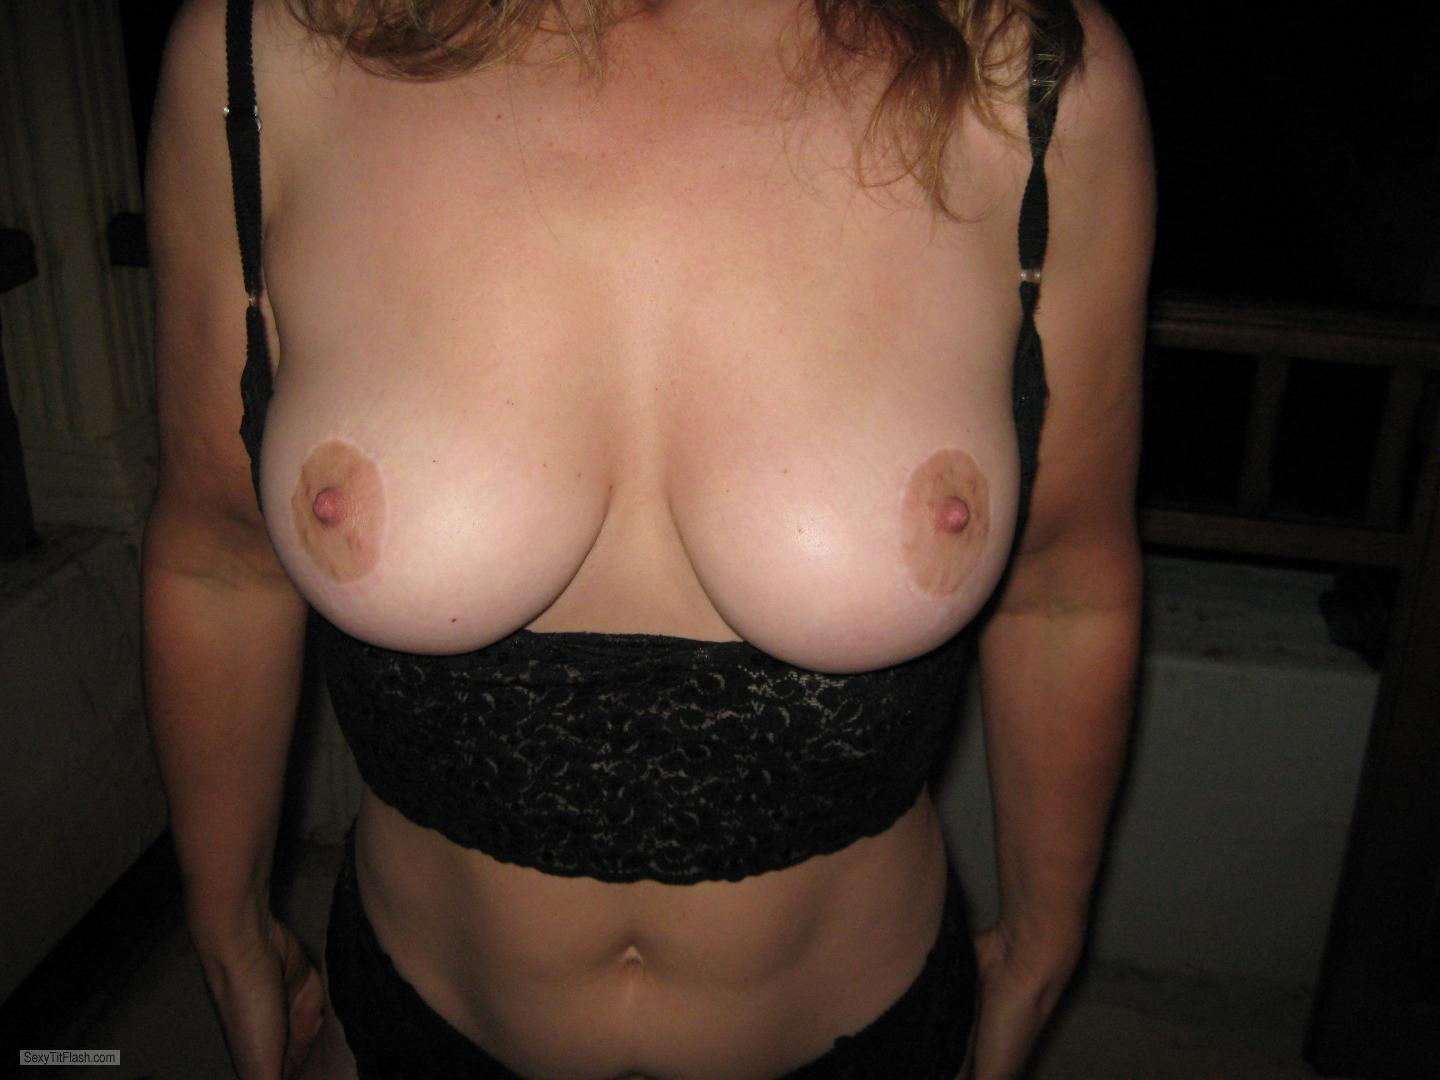 Tit Flash: Ex-Girlfriend's Big Tits - Topless Hothothot44 from United Kingdom